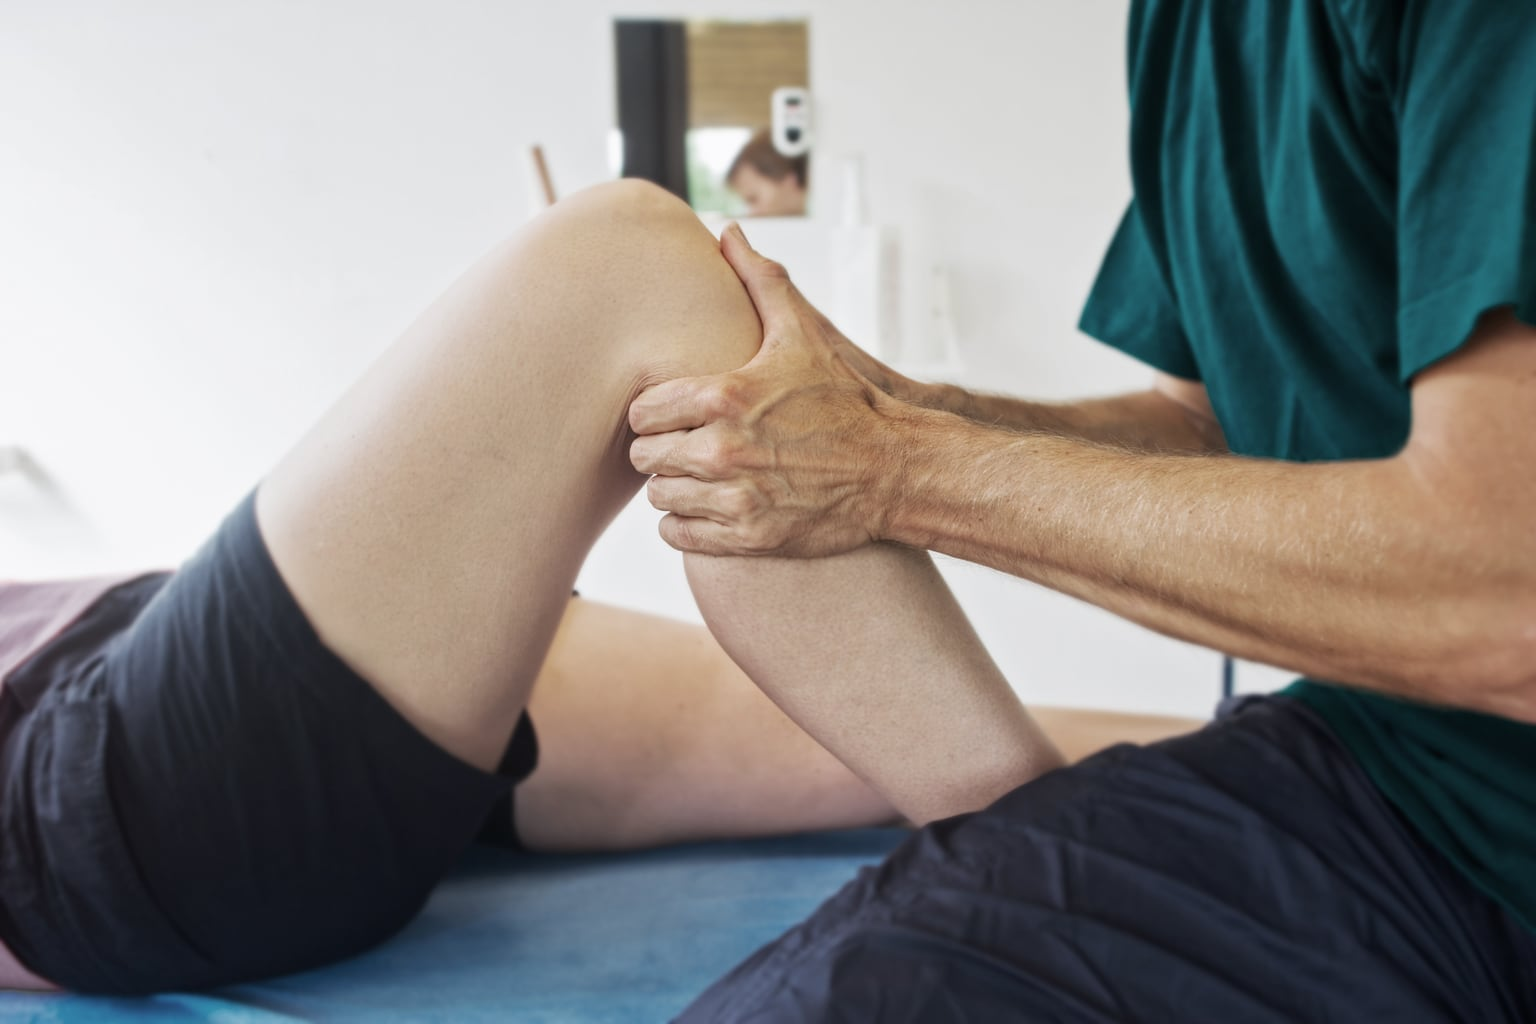 Checking a knee